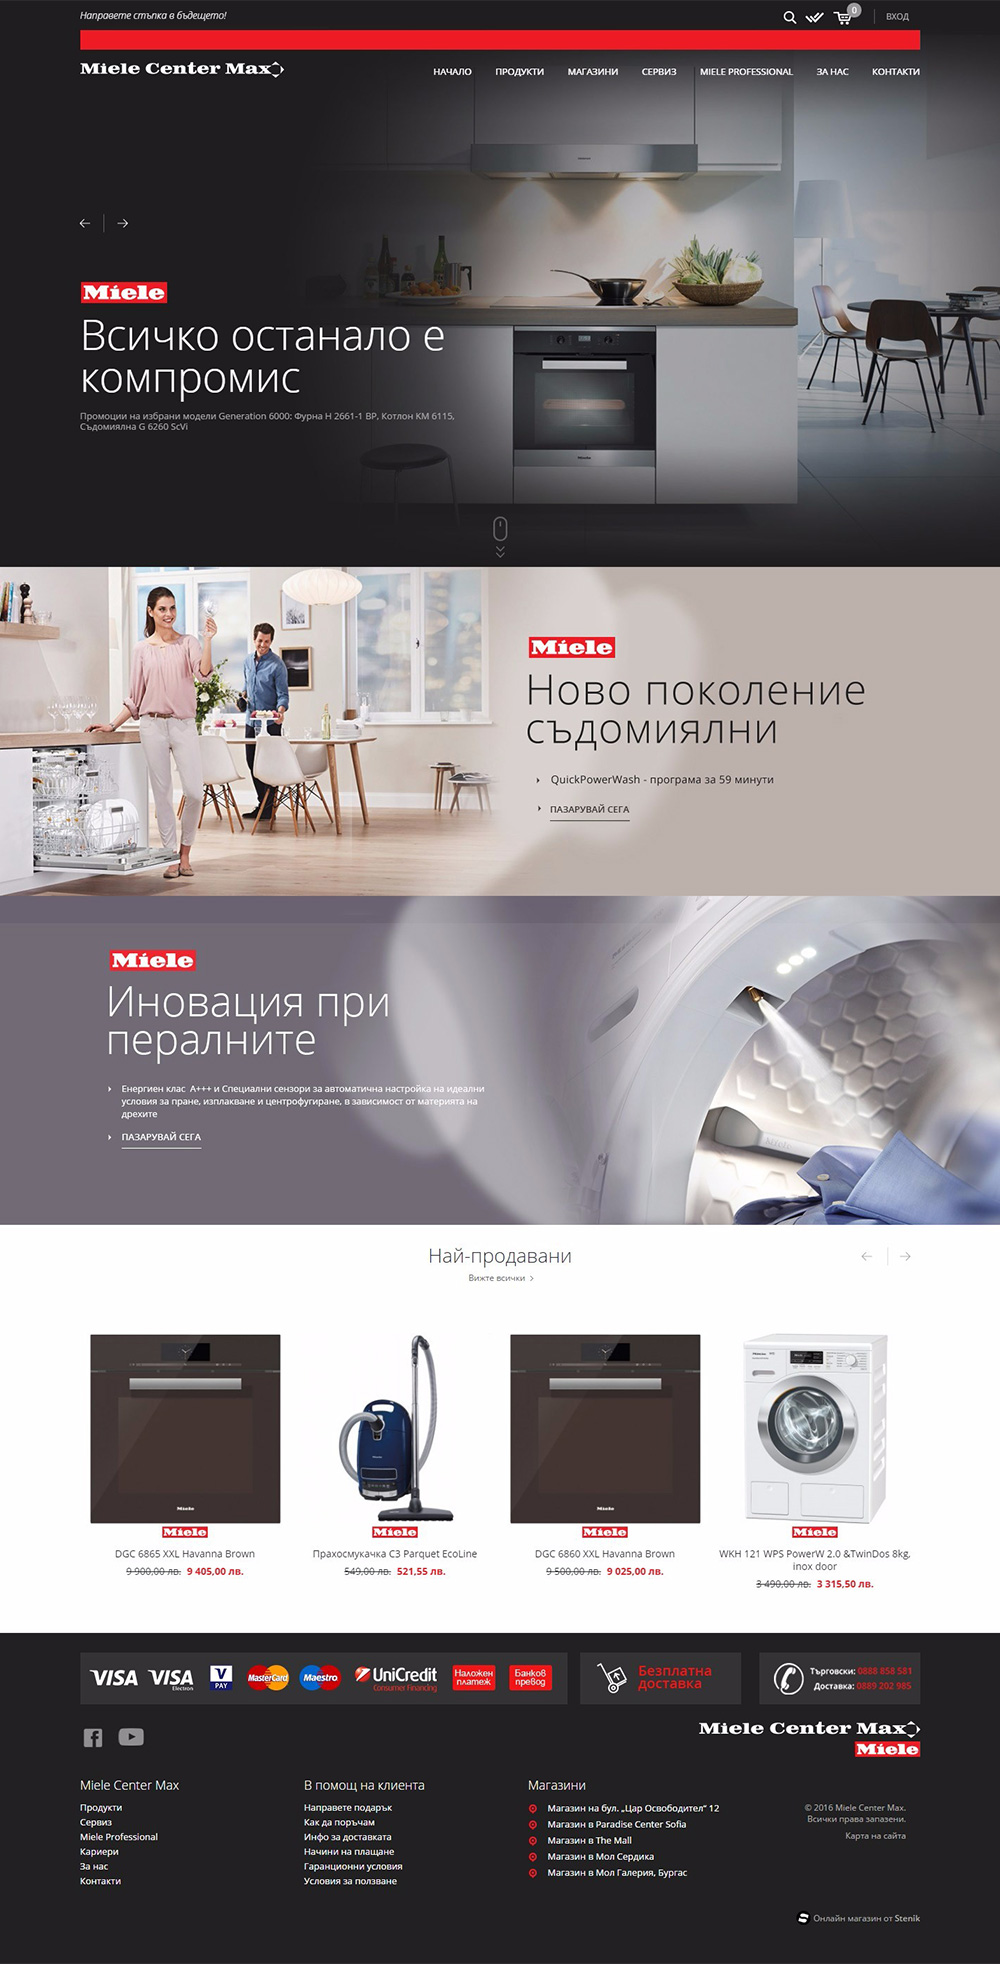 Online store for MIELE CENTER MAX, Miele Center Max - Online Shops, Stenik, Magento